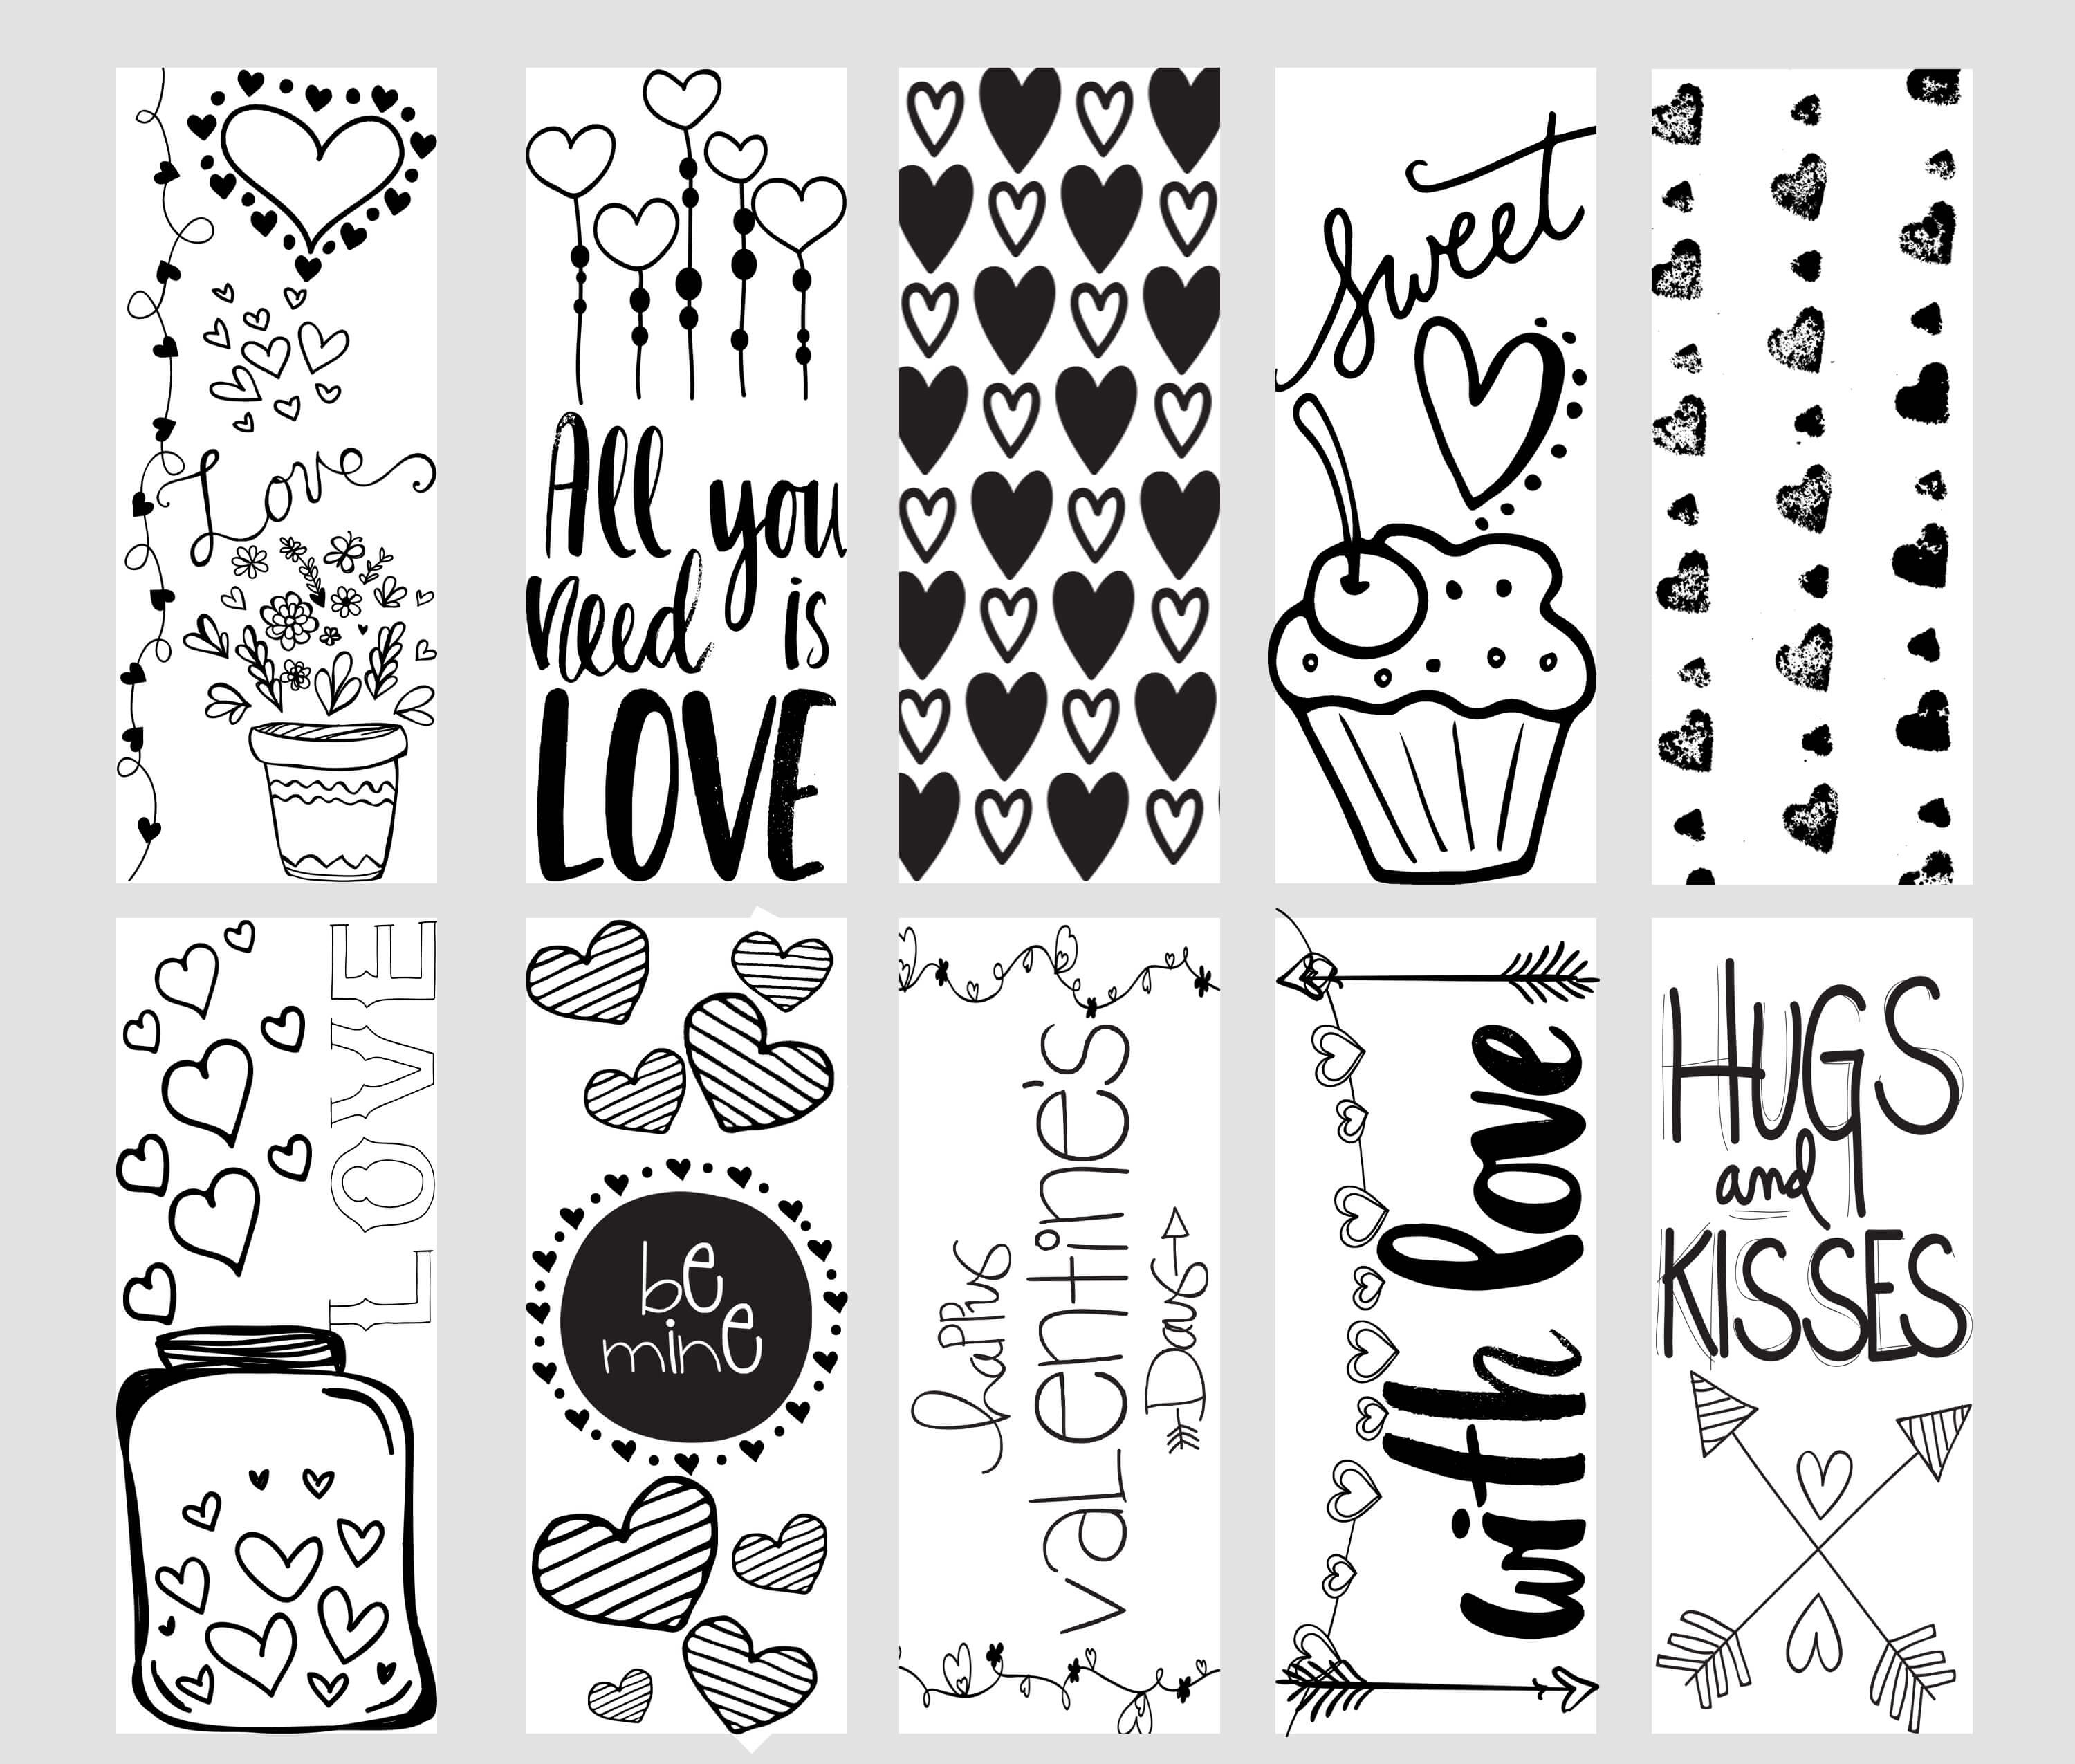 Valentine Printable Coloring Page Bookmarks - Kleinworth & Co - Free Printable Bookmarks To Color